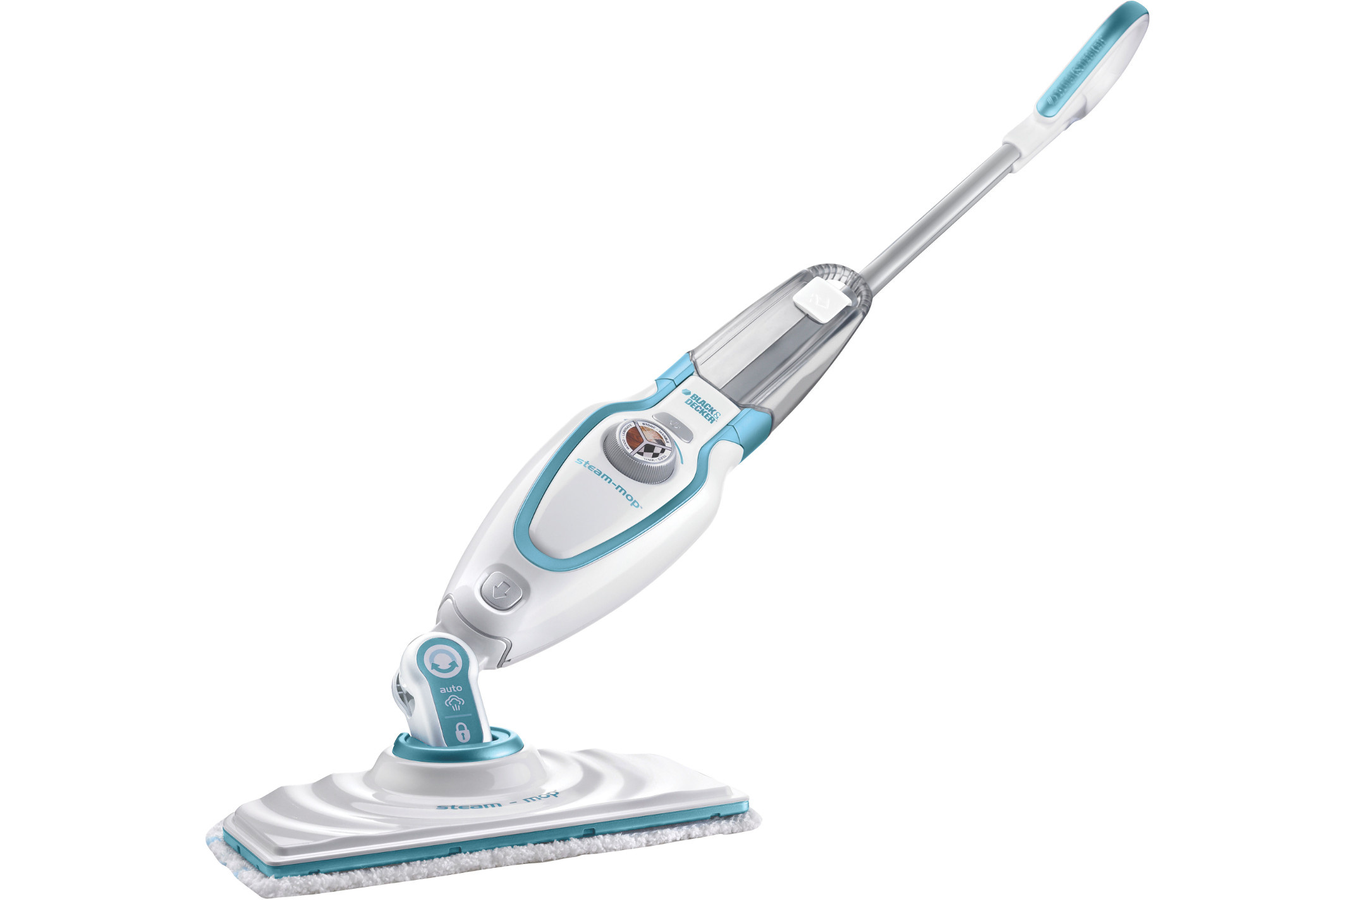 nettoyeur vapeur black decker fsm1610 steam mop steammop 3721353 darty. Black Bedroom Furniture Sets. Home Design Ideas